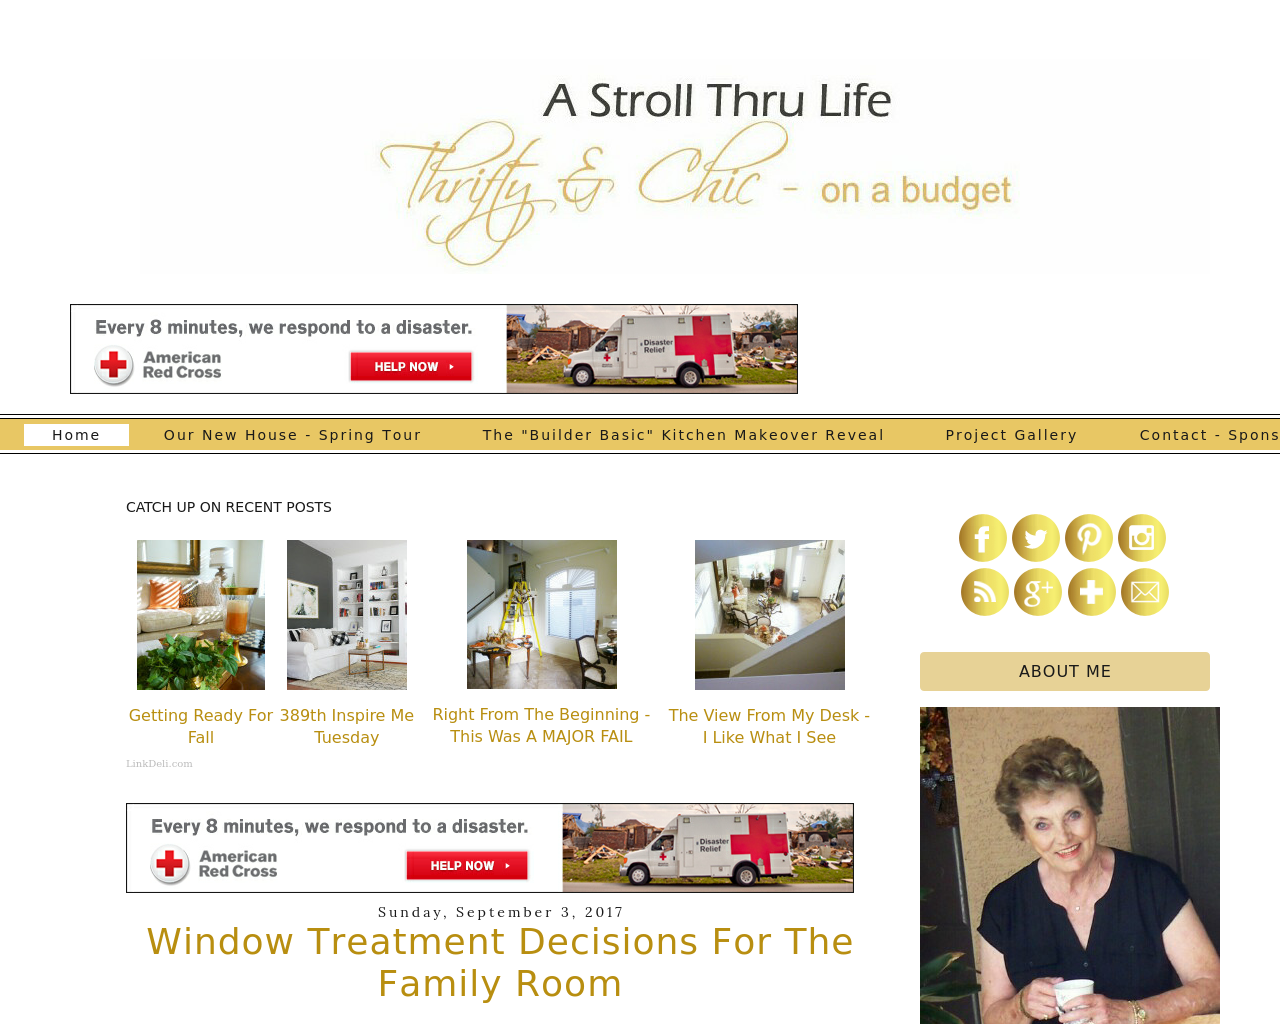 A-Stroll-Thru-Life-Advertising-Reviews-Pricing